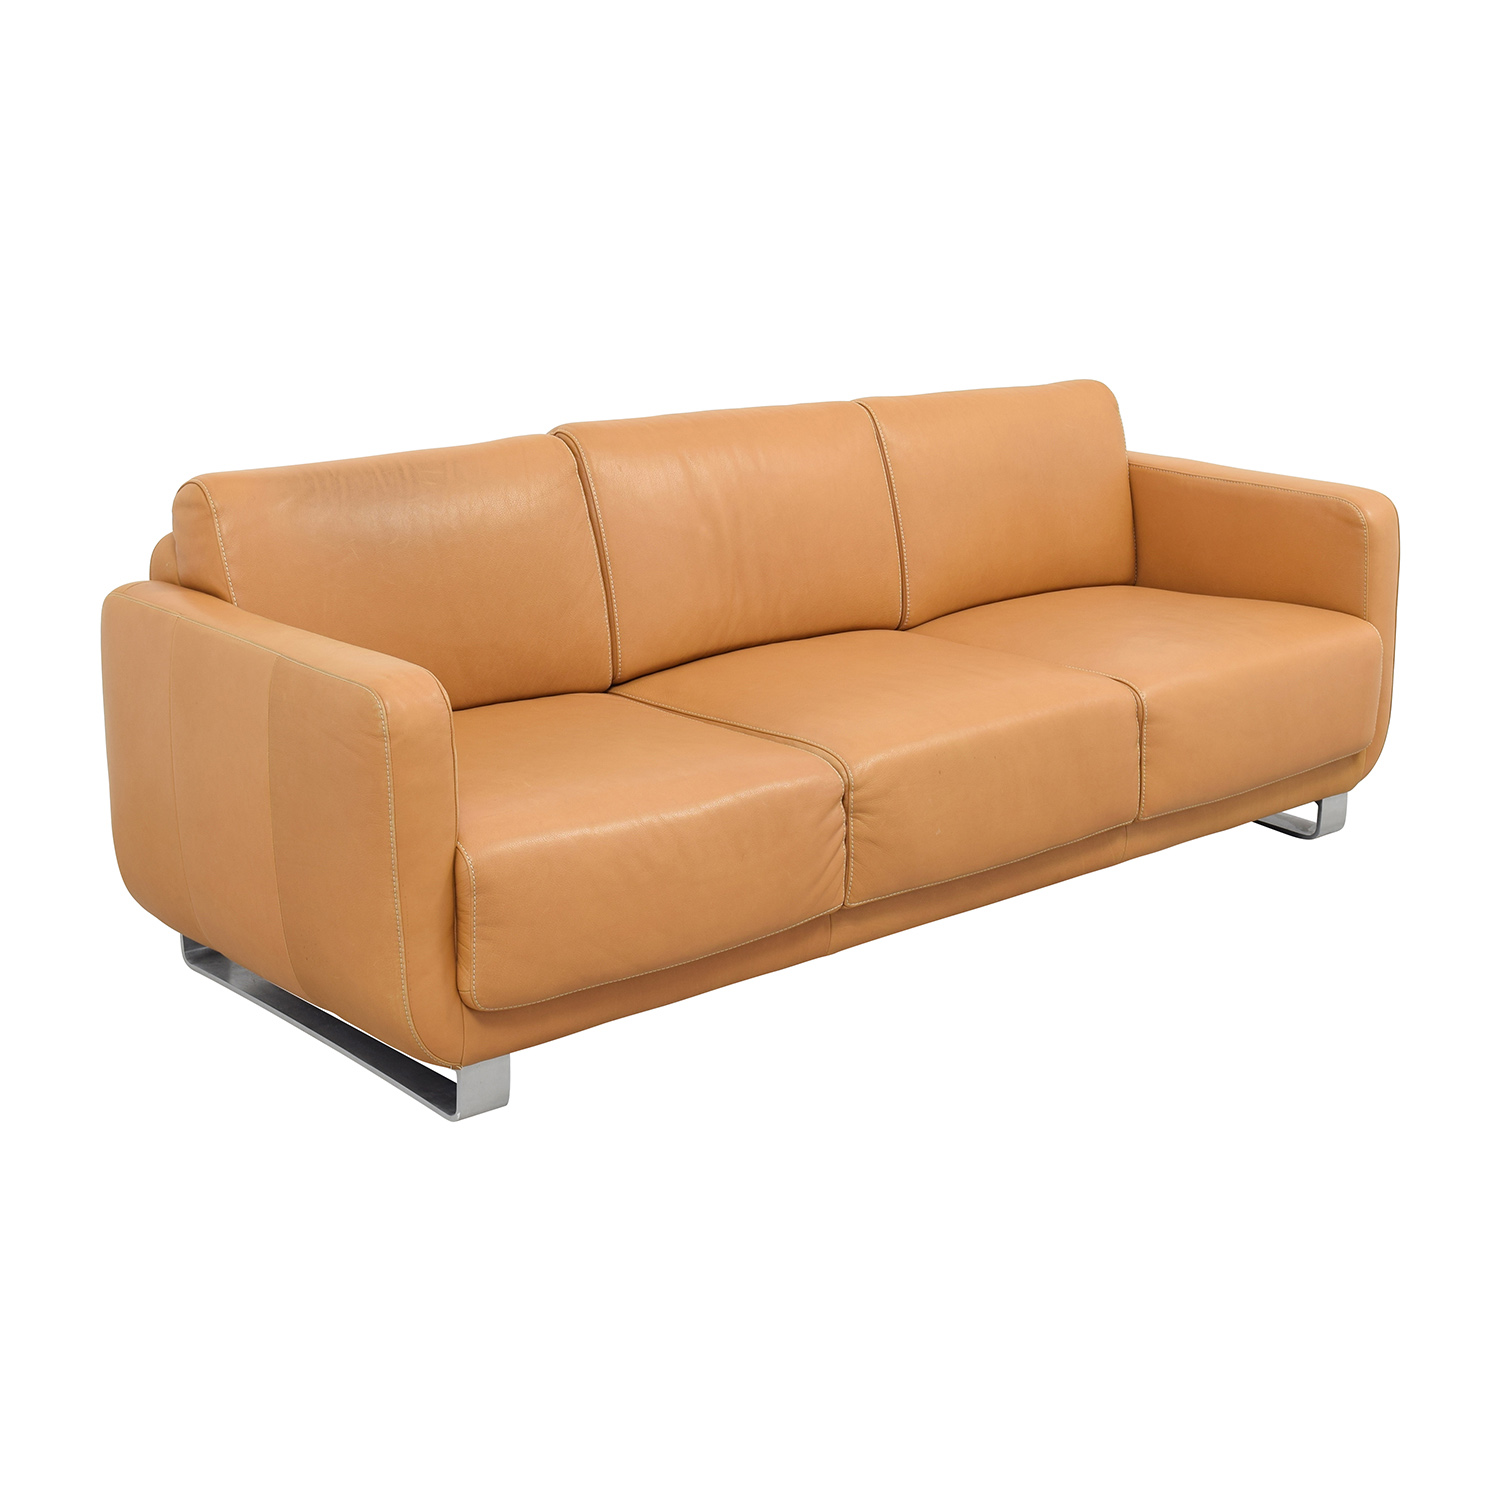 74 off w schillig w schillig light brown leather sofa sofas. Black Bedroom Furniture Sets. Home Design Ideas